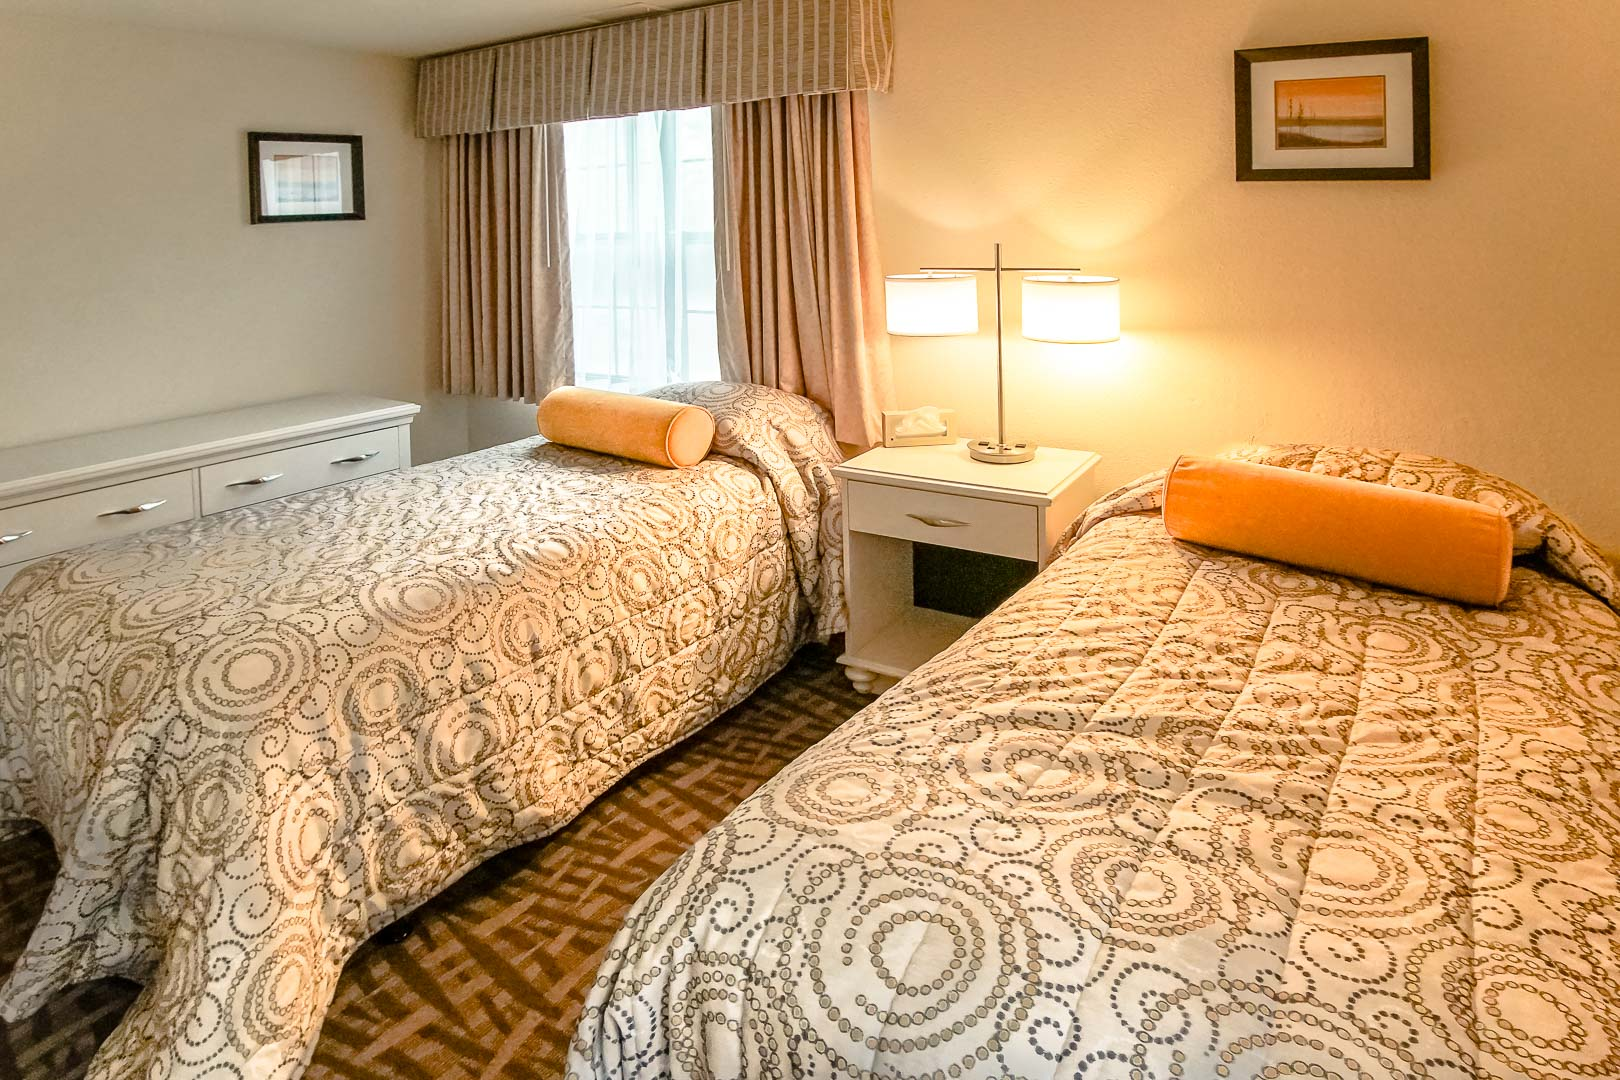 A traditional two bedroom unit with double beds at VRI's Sea Mist Resort in Massachusetts.